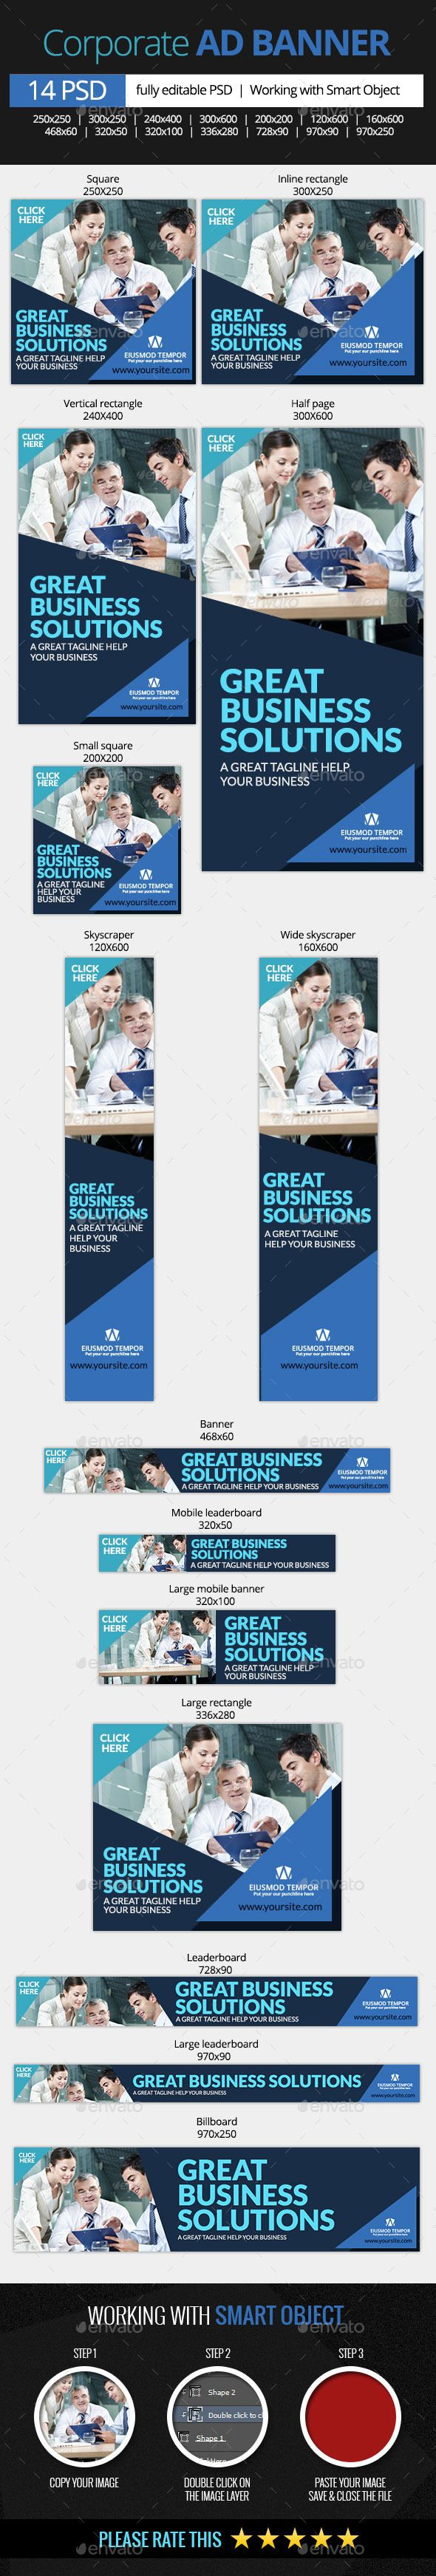 Corporate and Business Web Banners   #businessbanner #corporaebanner   Download: http://graphicriver.net/item/corporate-and-business-web-banners/10367163?ref=ksioks